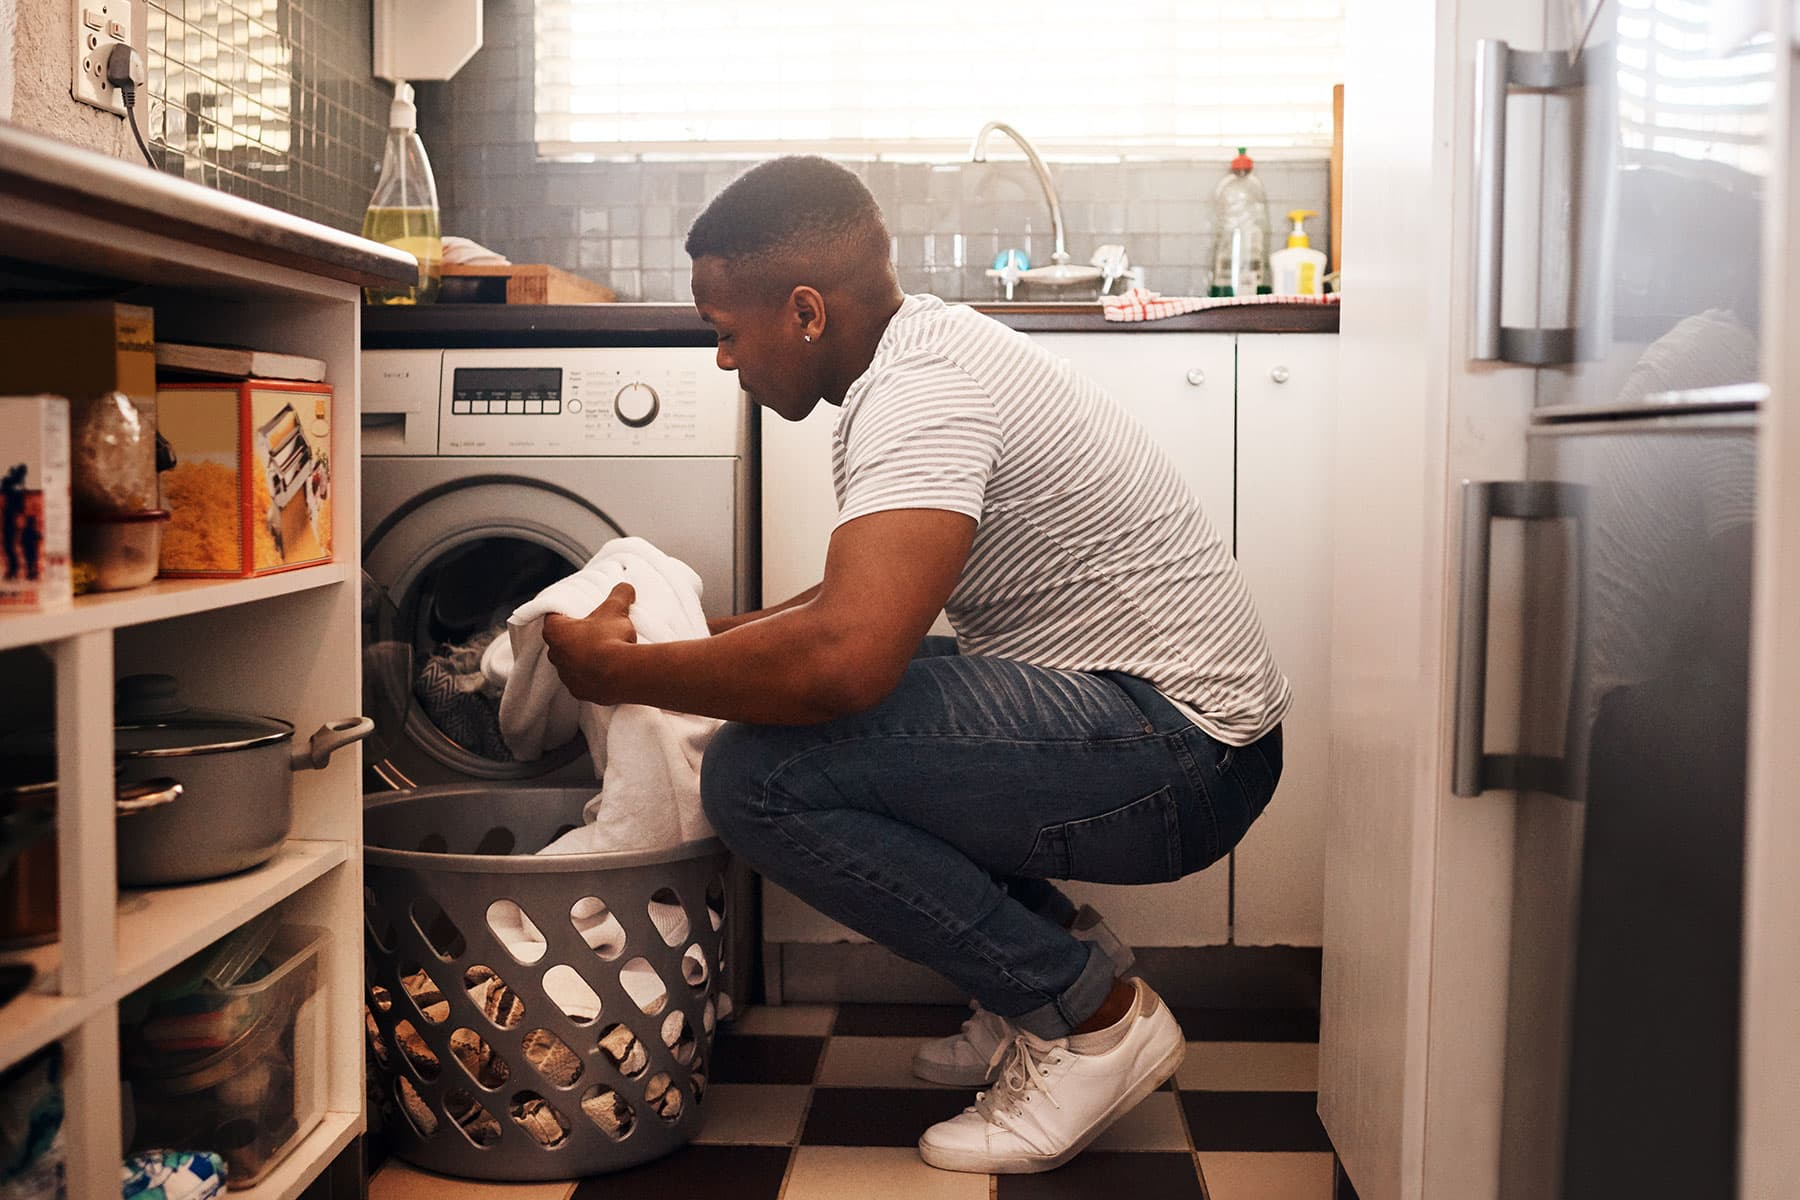 Young man loading laundry